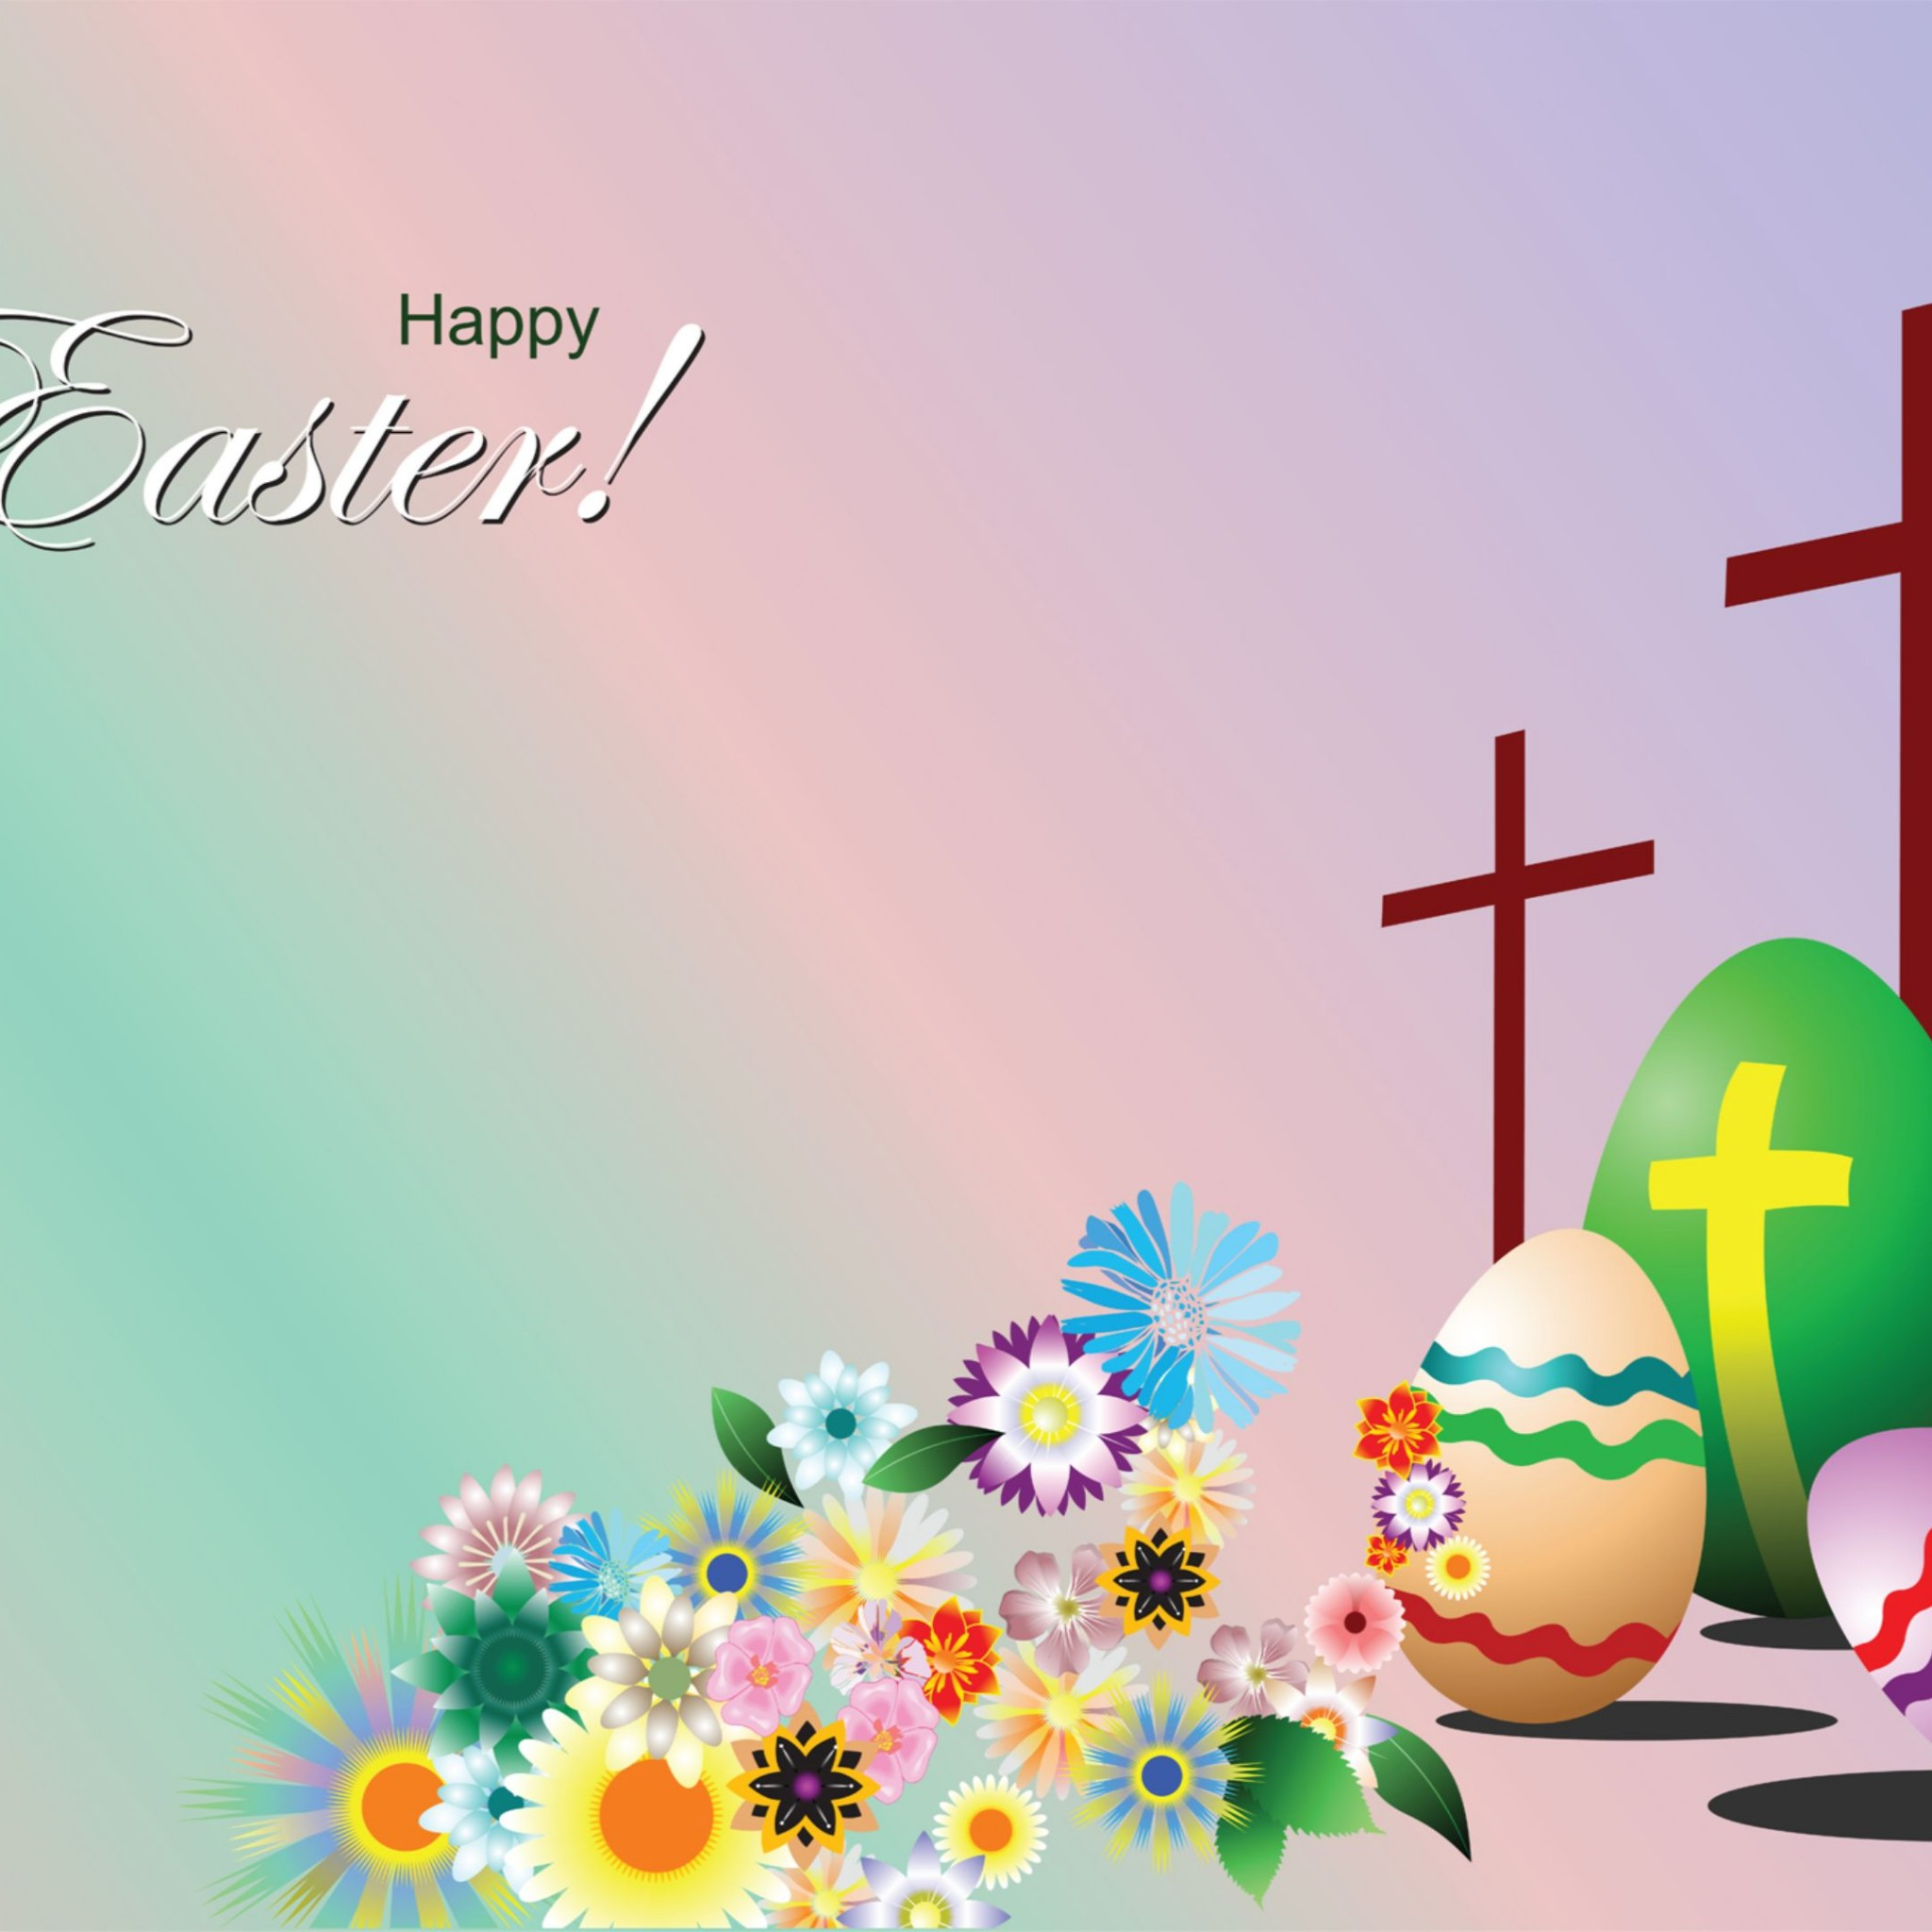 Religious easter backgrounds wallpapersafari - Religious easter wallpaper ...